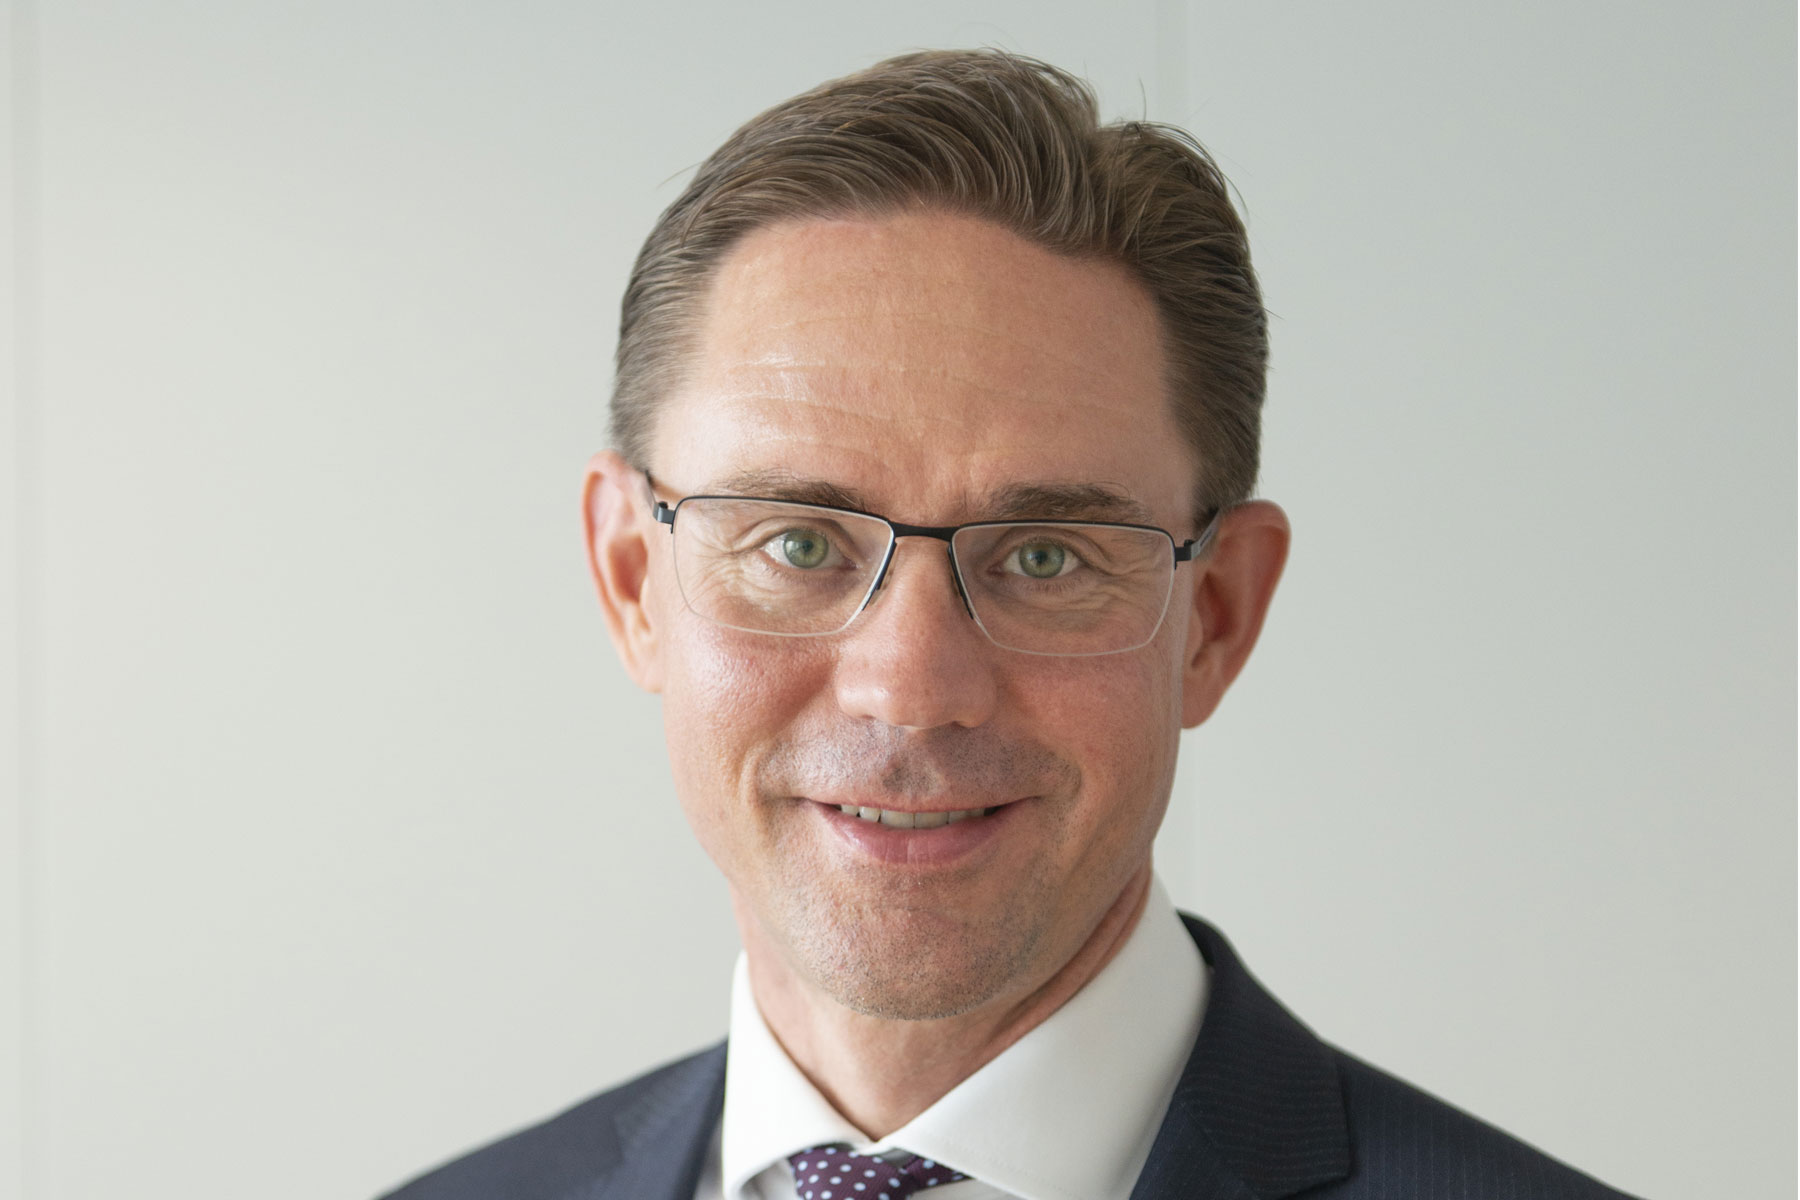 Jyrki Katainen | Vice-President, European Commission